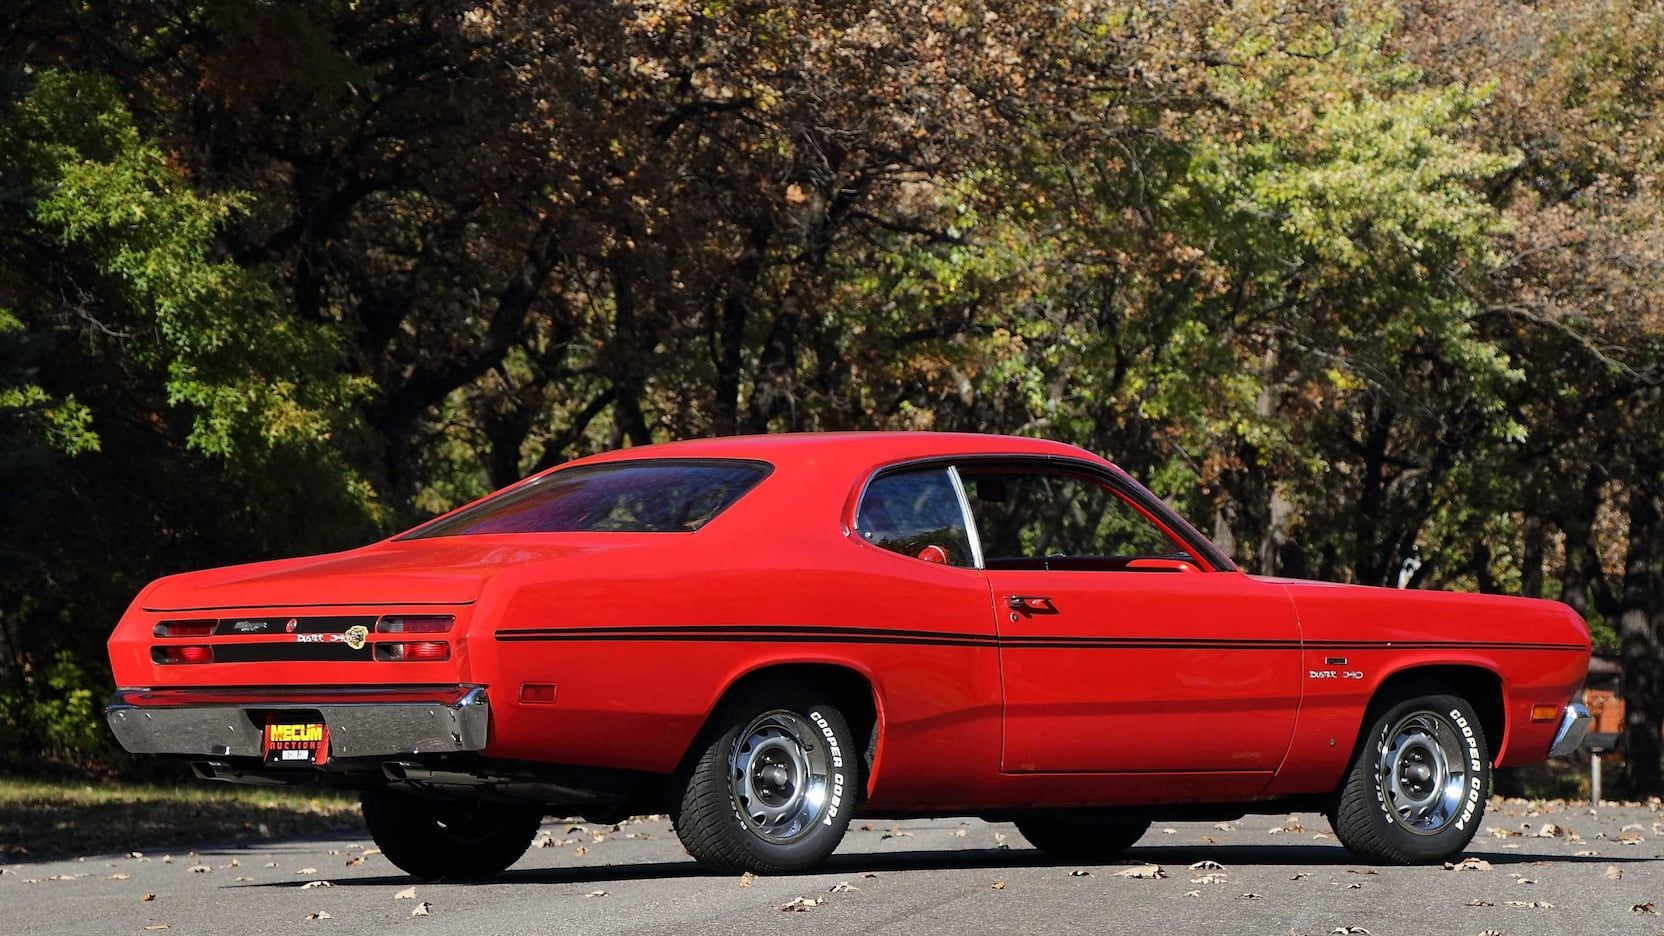 1970 Plymouth Duster T160 Kissimmee 2019 In 2020 Plymouth Muscle Cars Plymouth Duster Plymouth